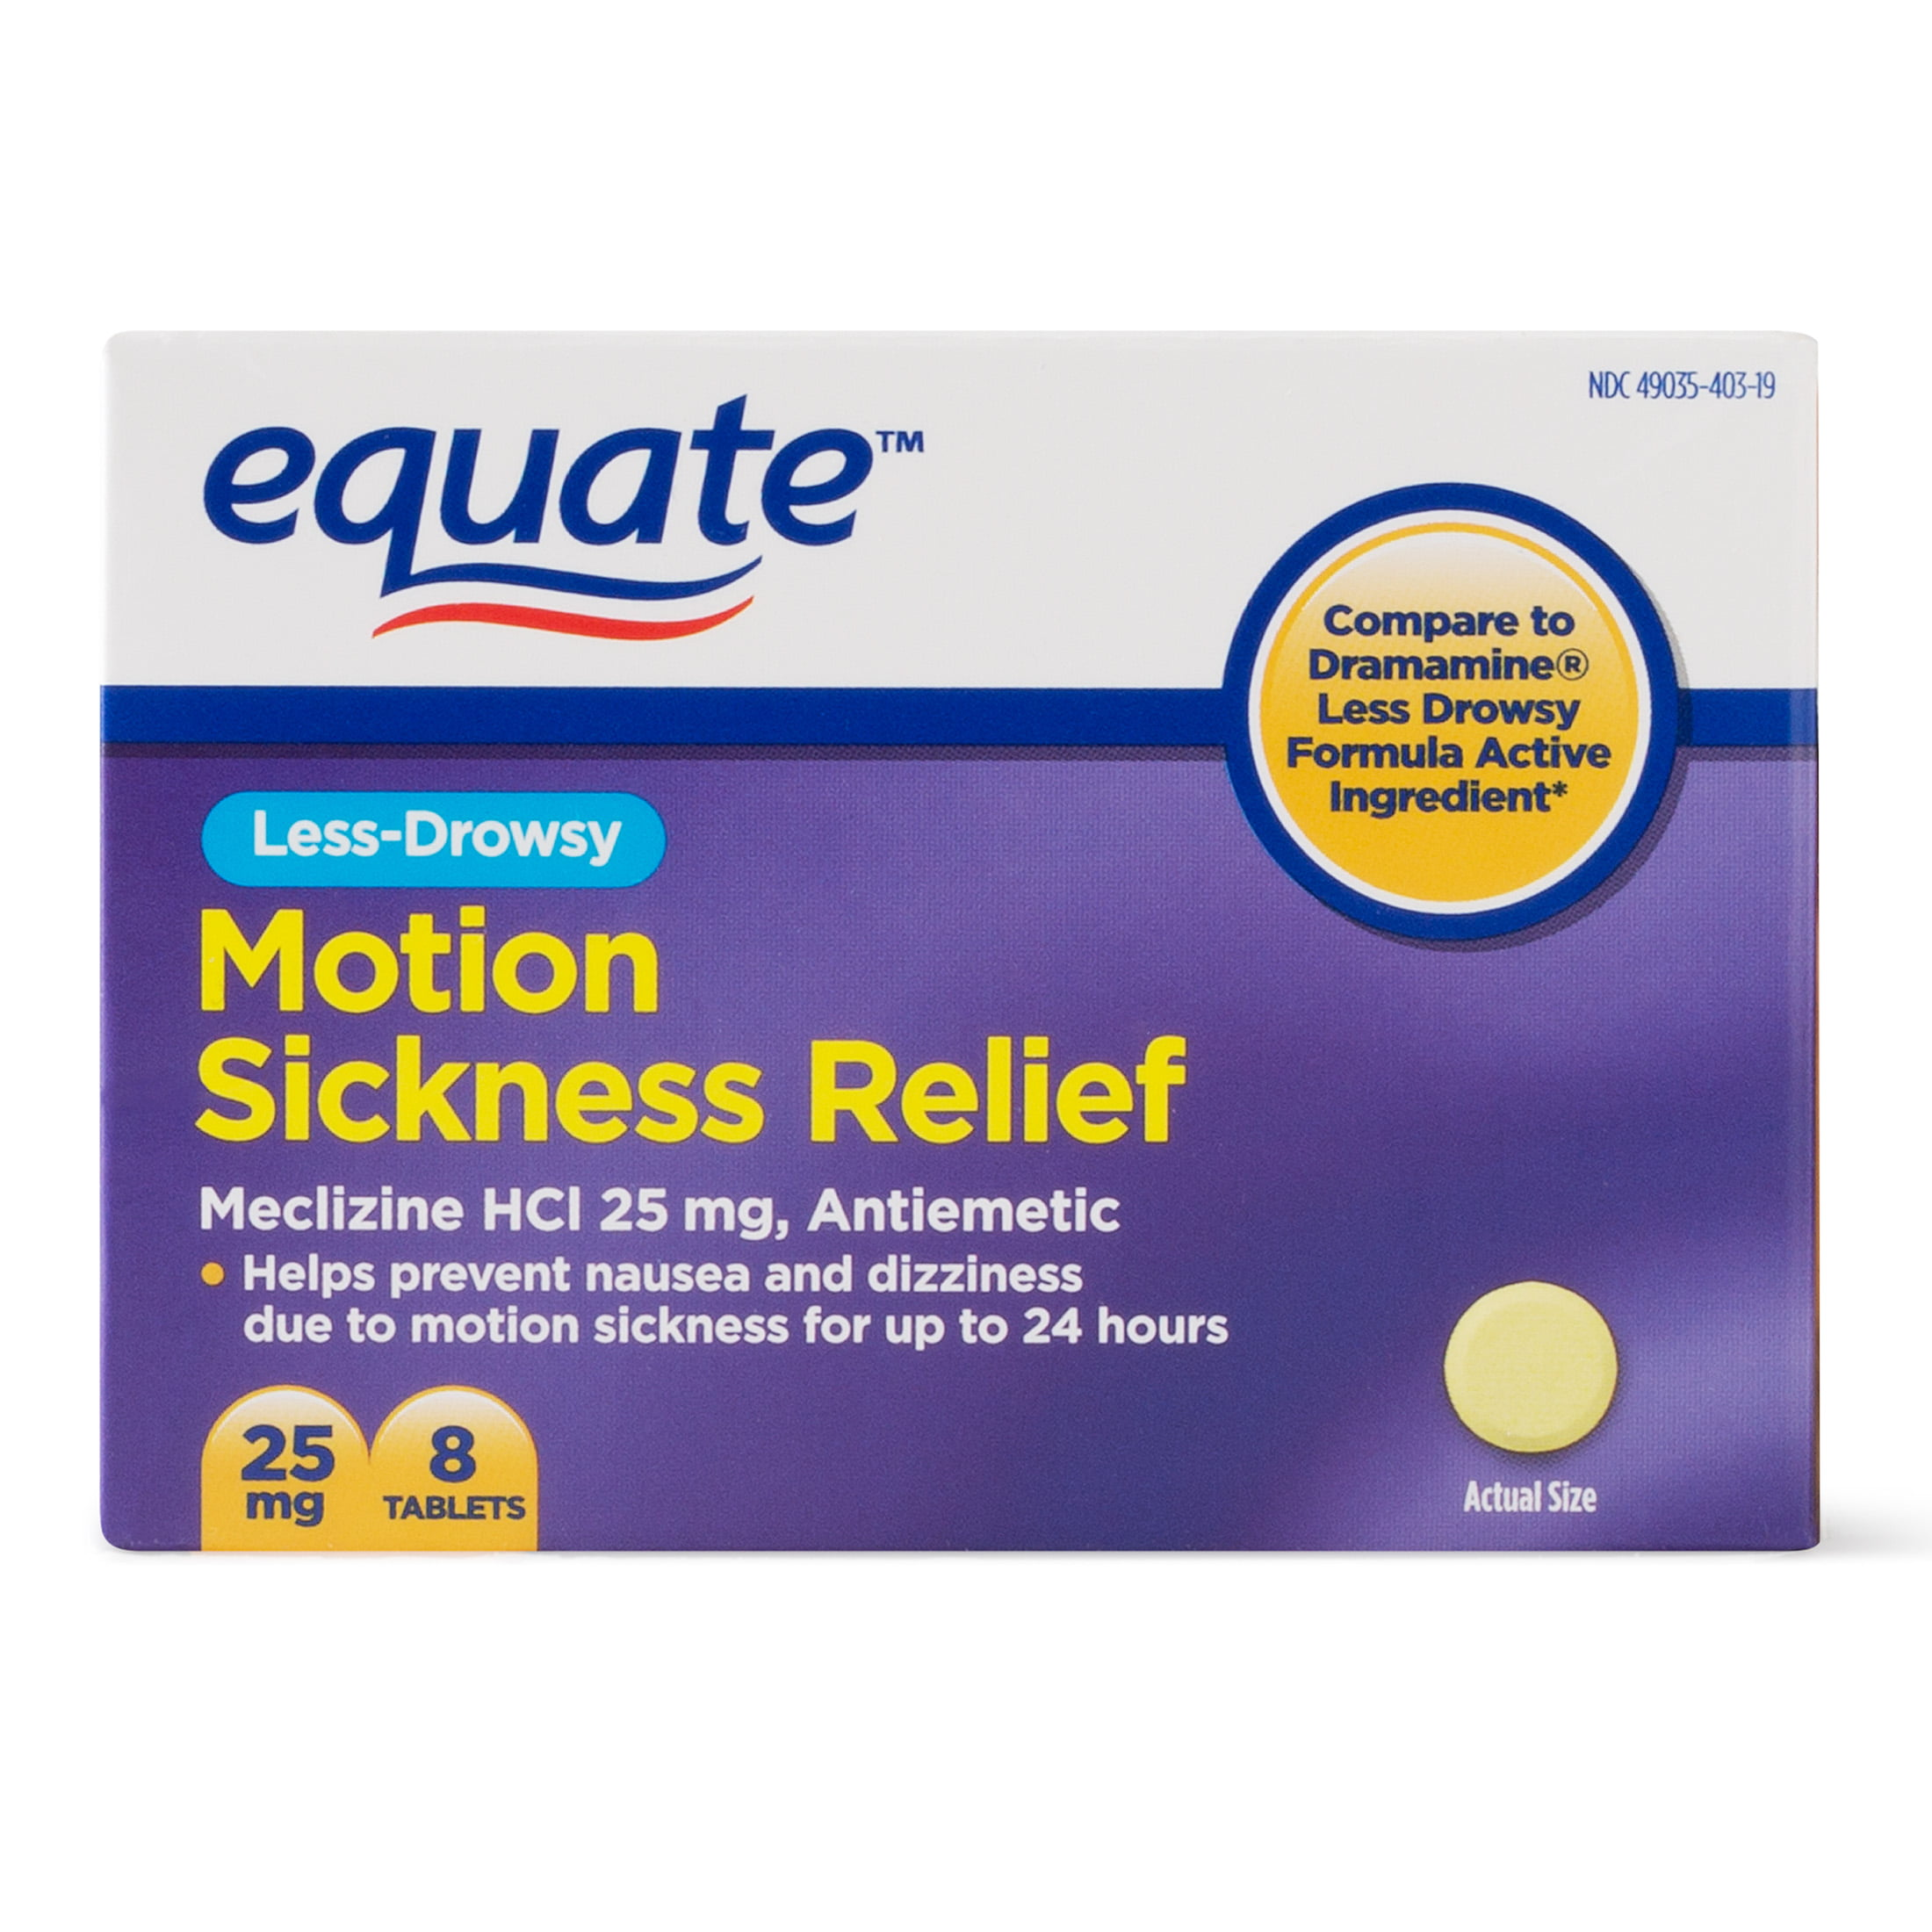 equate less-drowsy motion sickness relief meclizine tablets, 25 mg